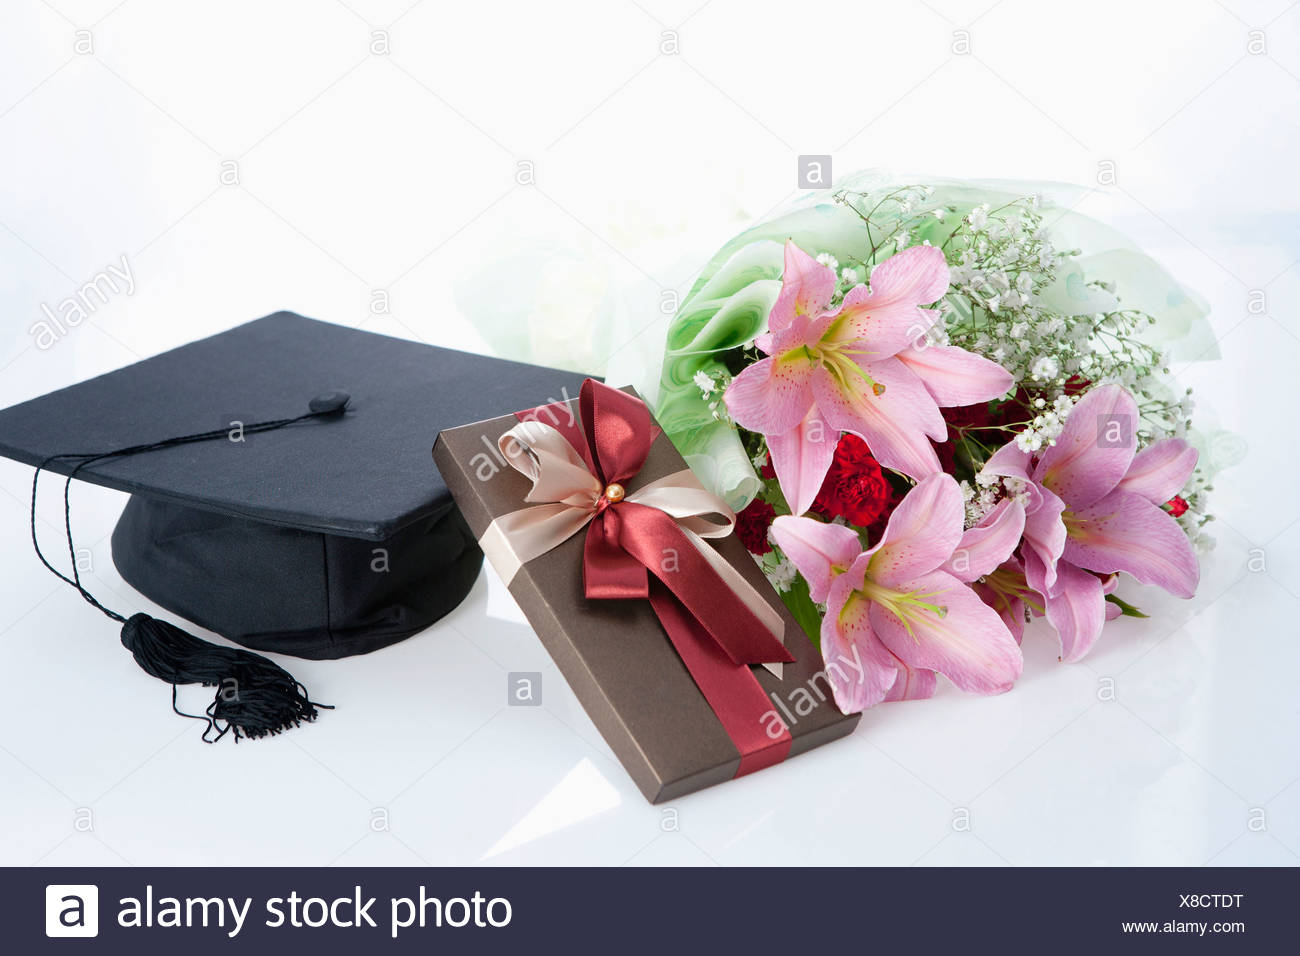 The Bouquet Of Flower Gift And Graduation Cap Stock Photo